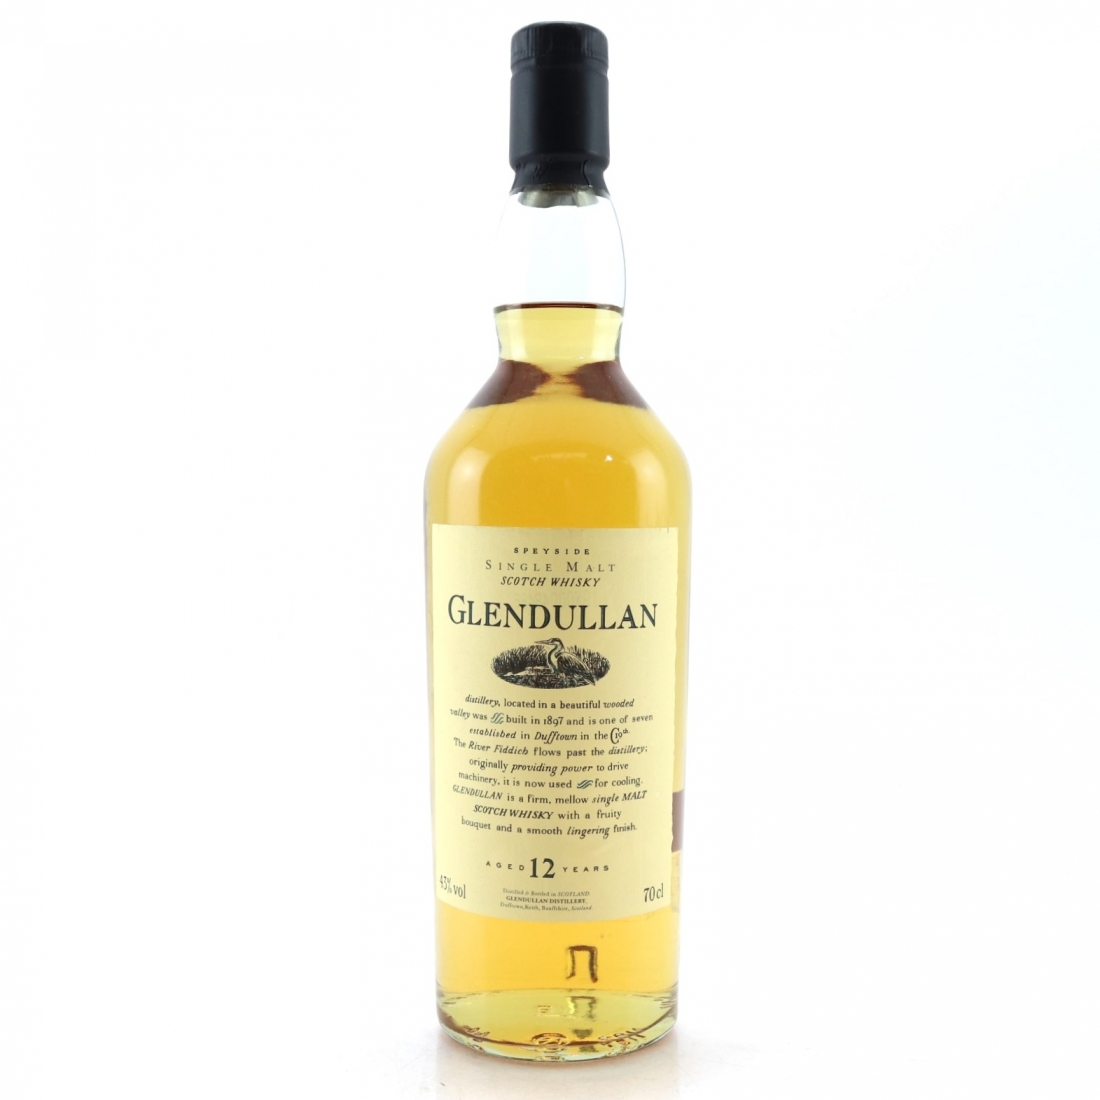 Glendullan 12 Year Old Flora and Fauna